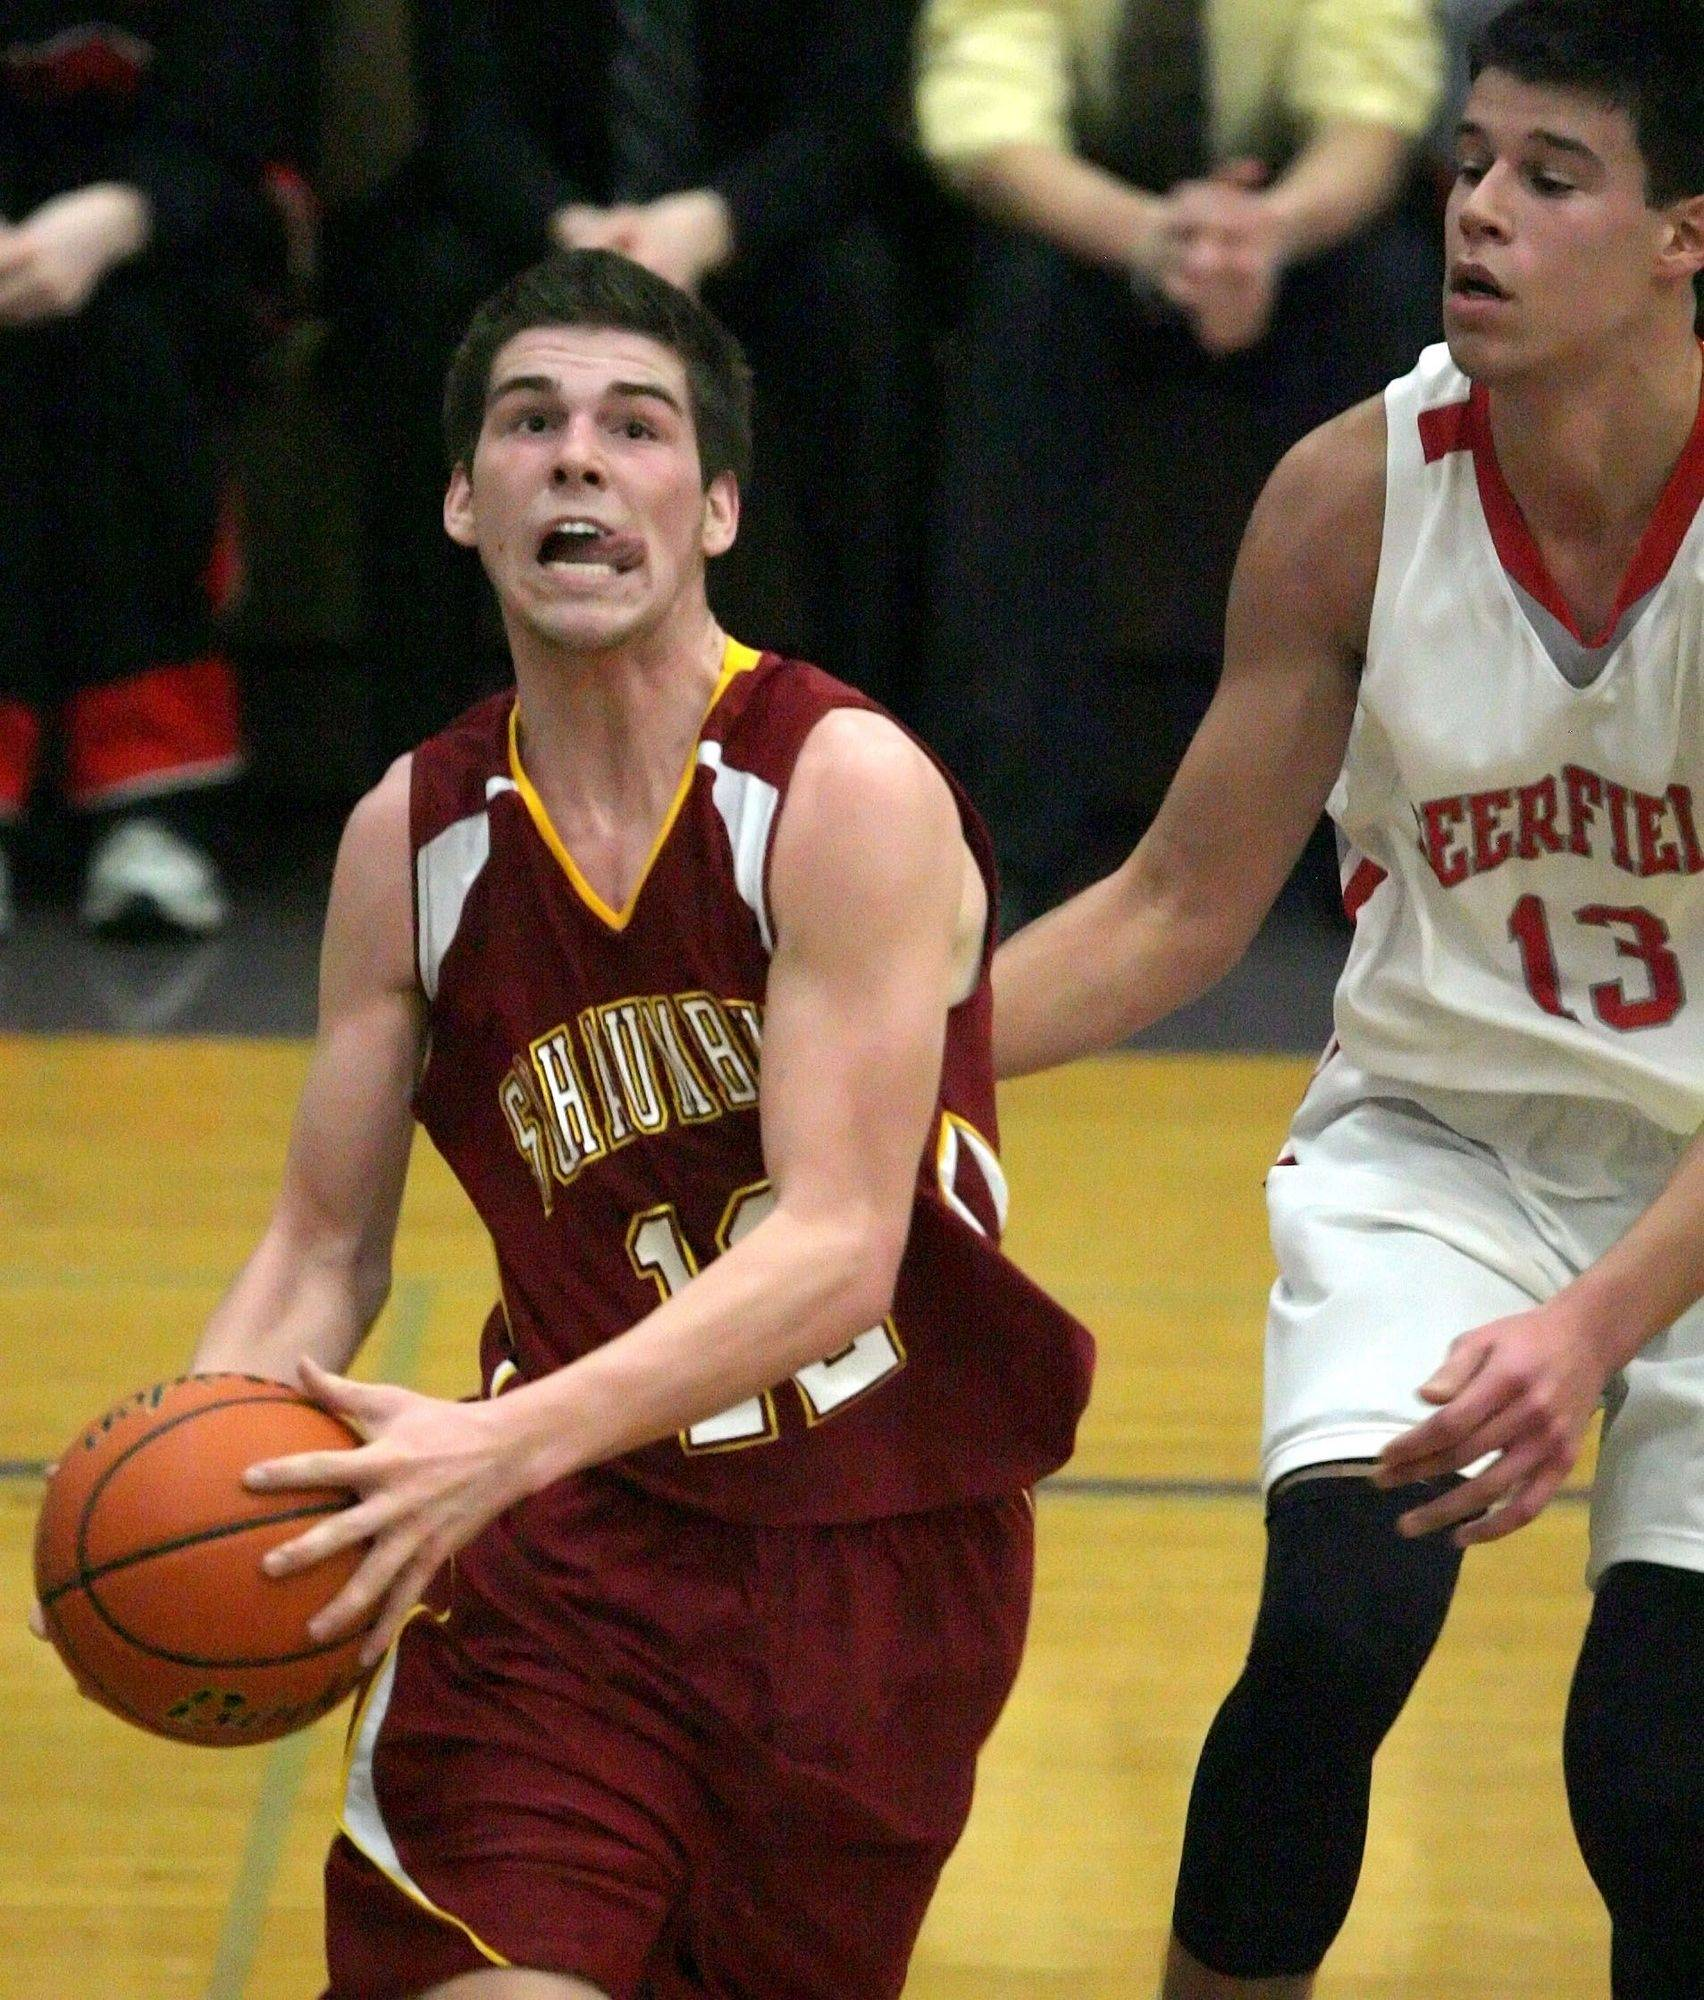 Schaumburg's Declan Geraghty, left, drives past Deerfield's Duje Dukan during Schaumburg's 58-48 in the sectional semifinal game Wednesday in Waukegan.